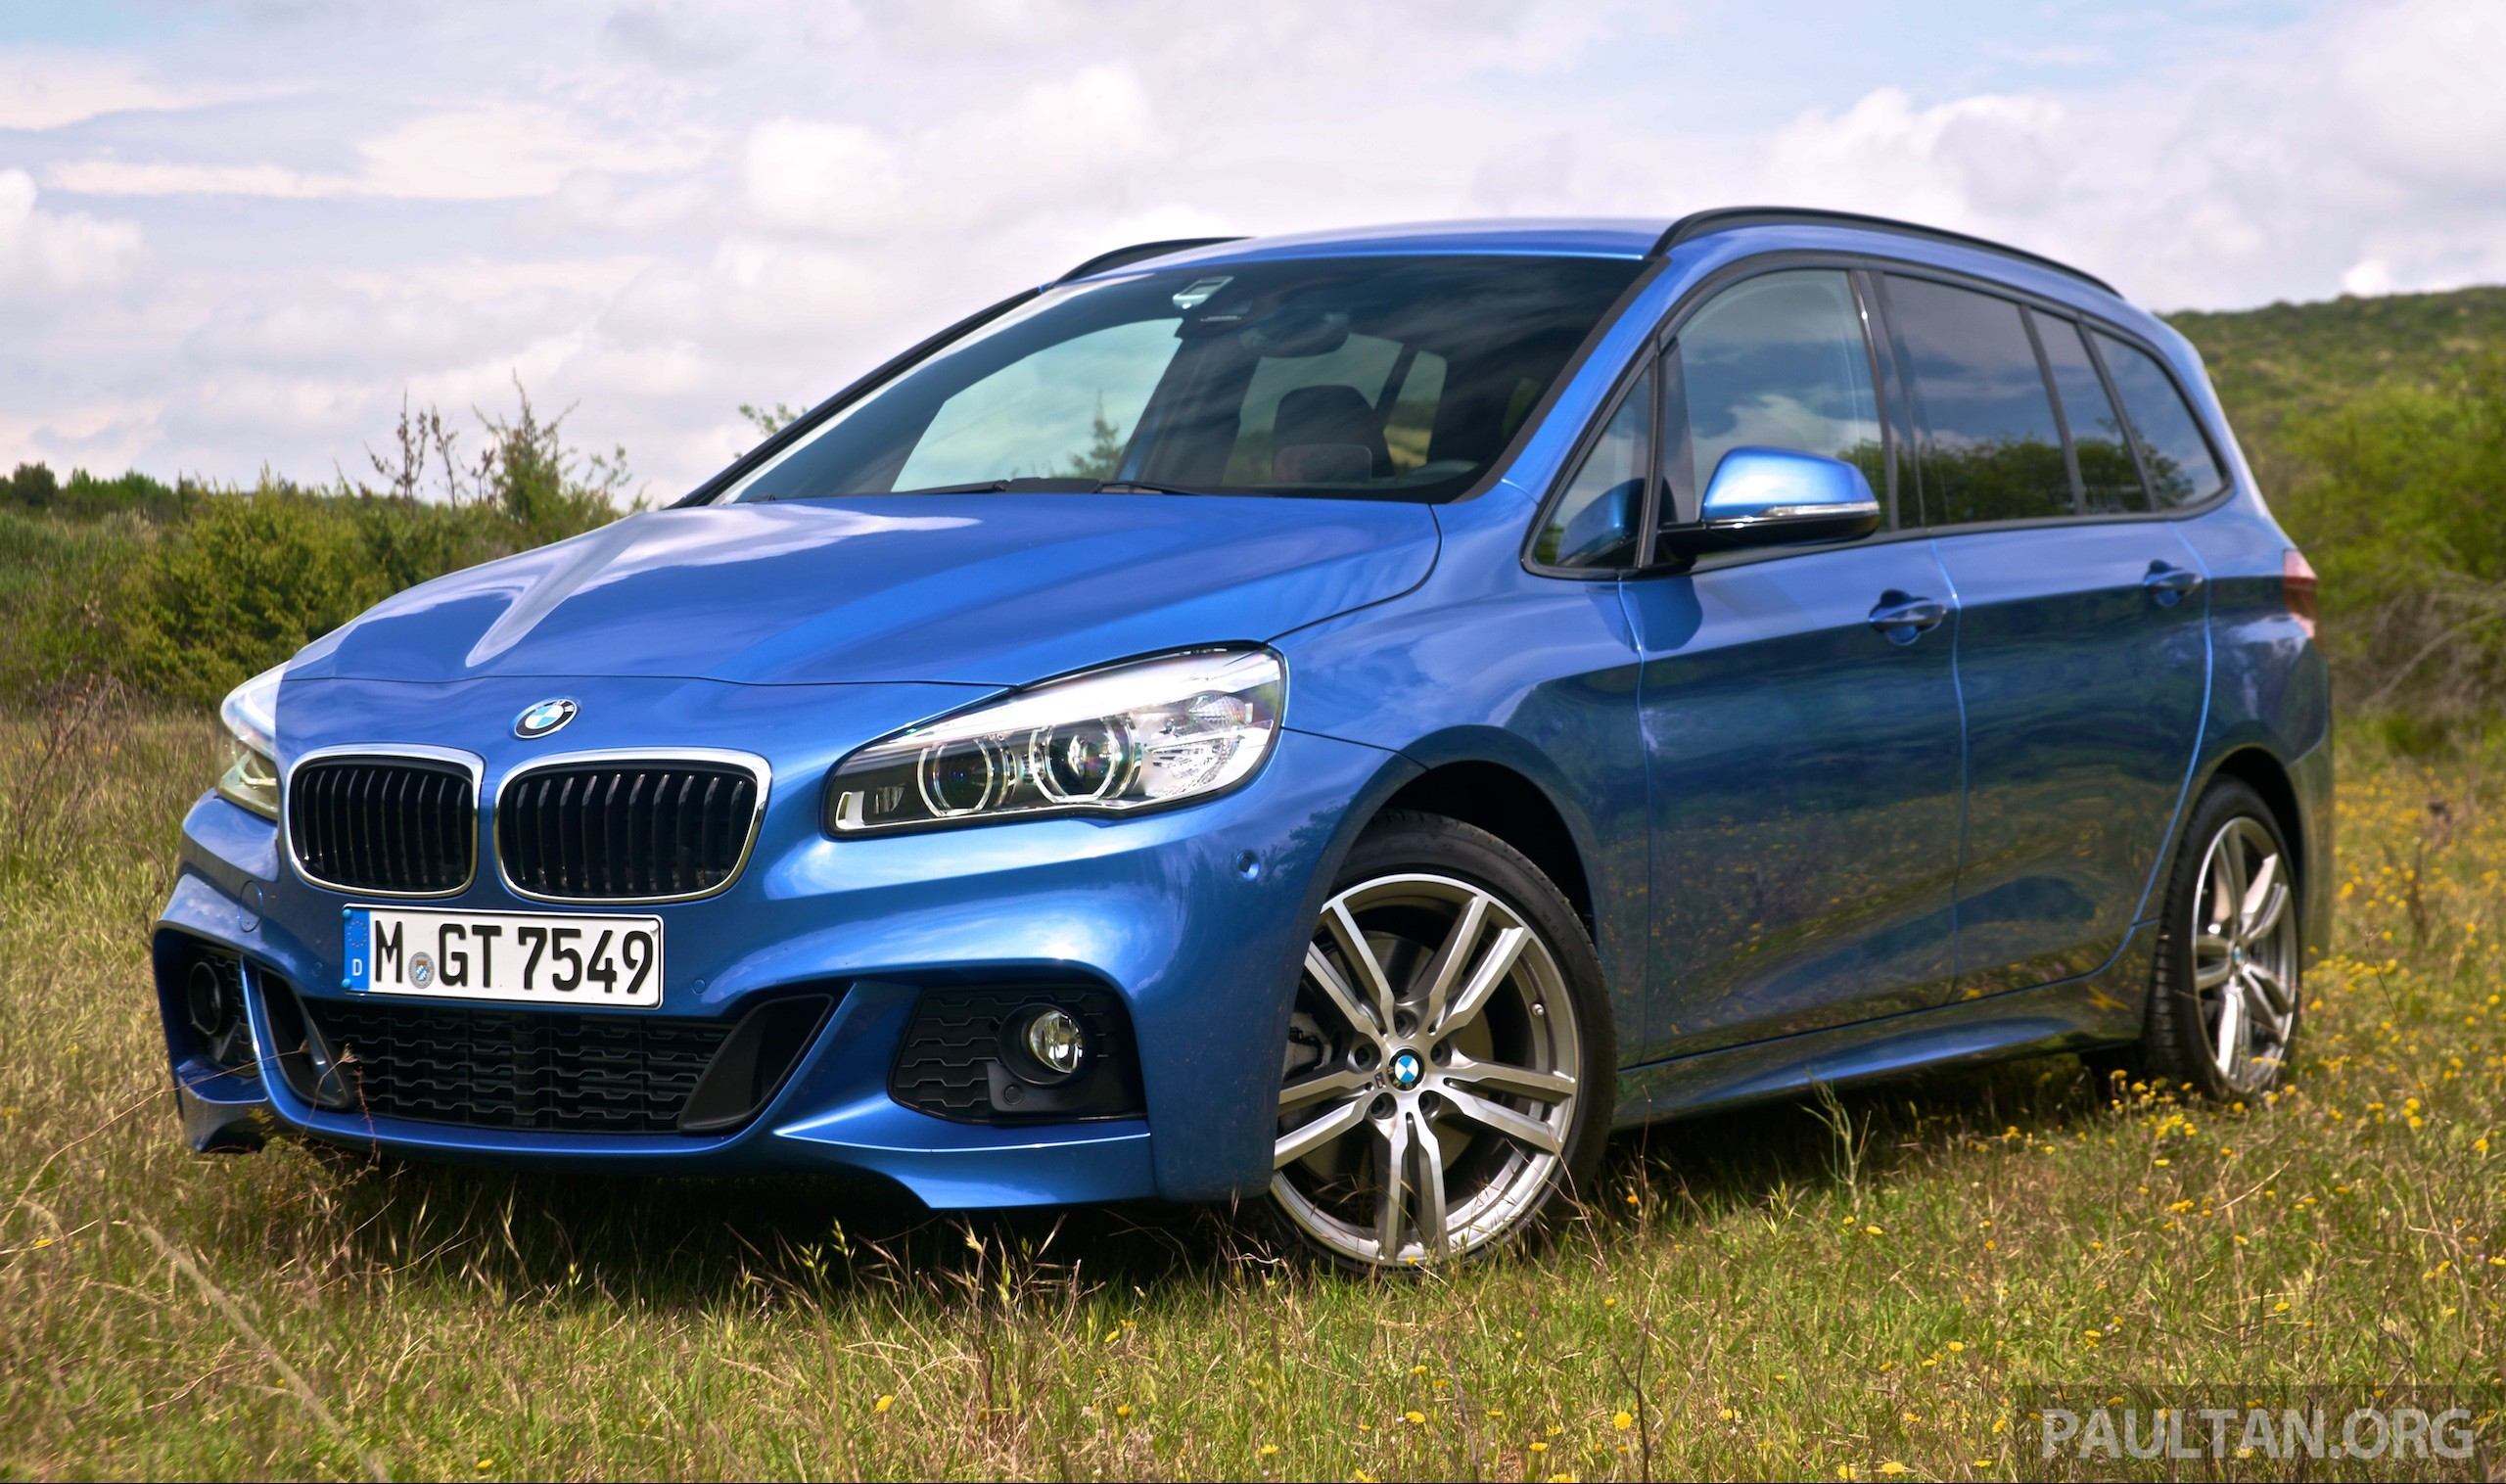 DRIVEN: F46 BMW 2 Series Gran Tourer in Croatia Paul Tan ...